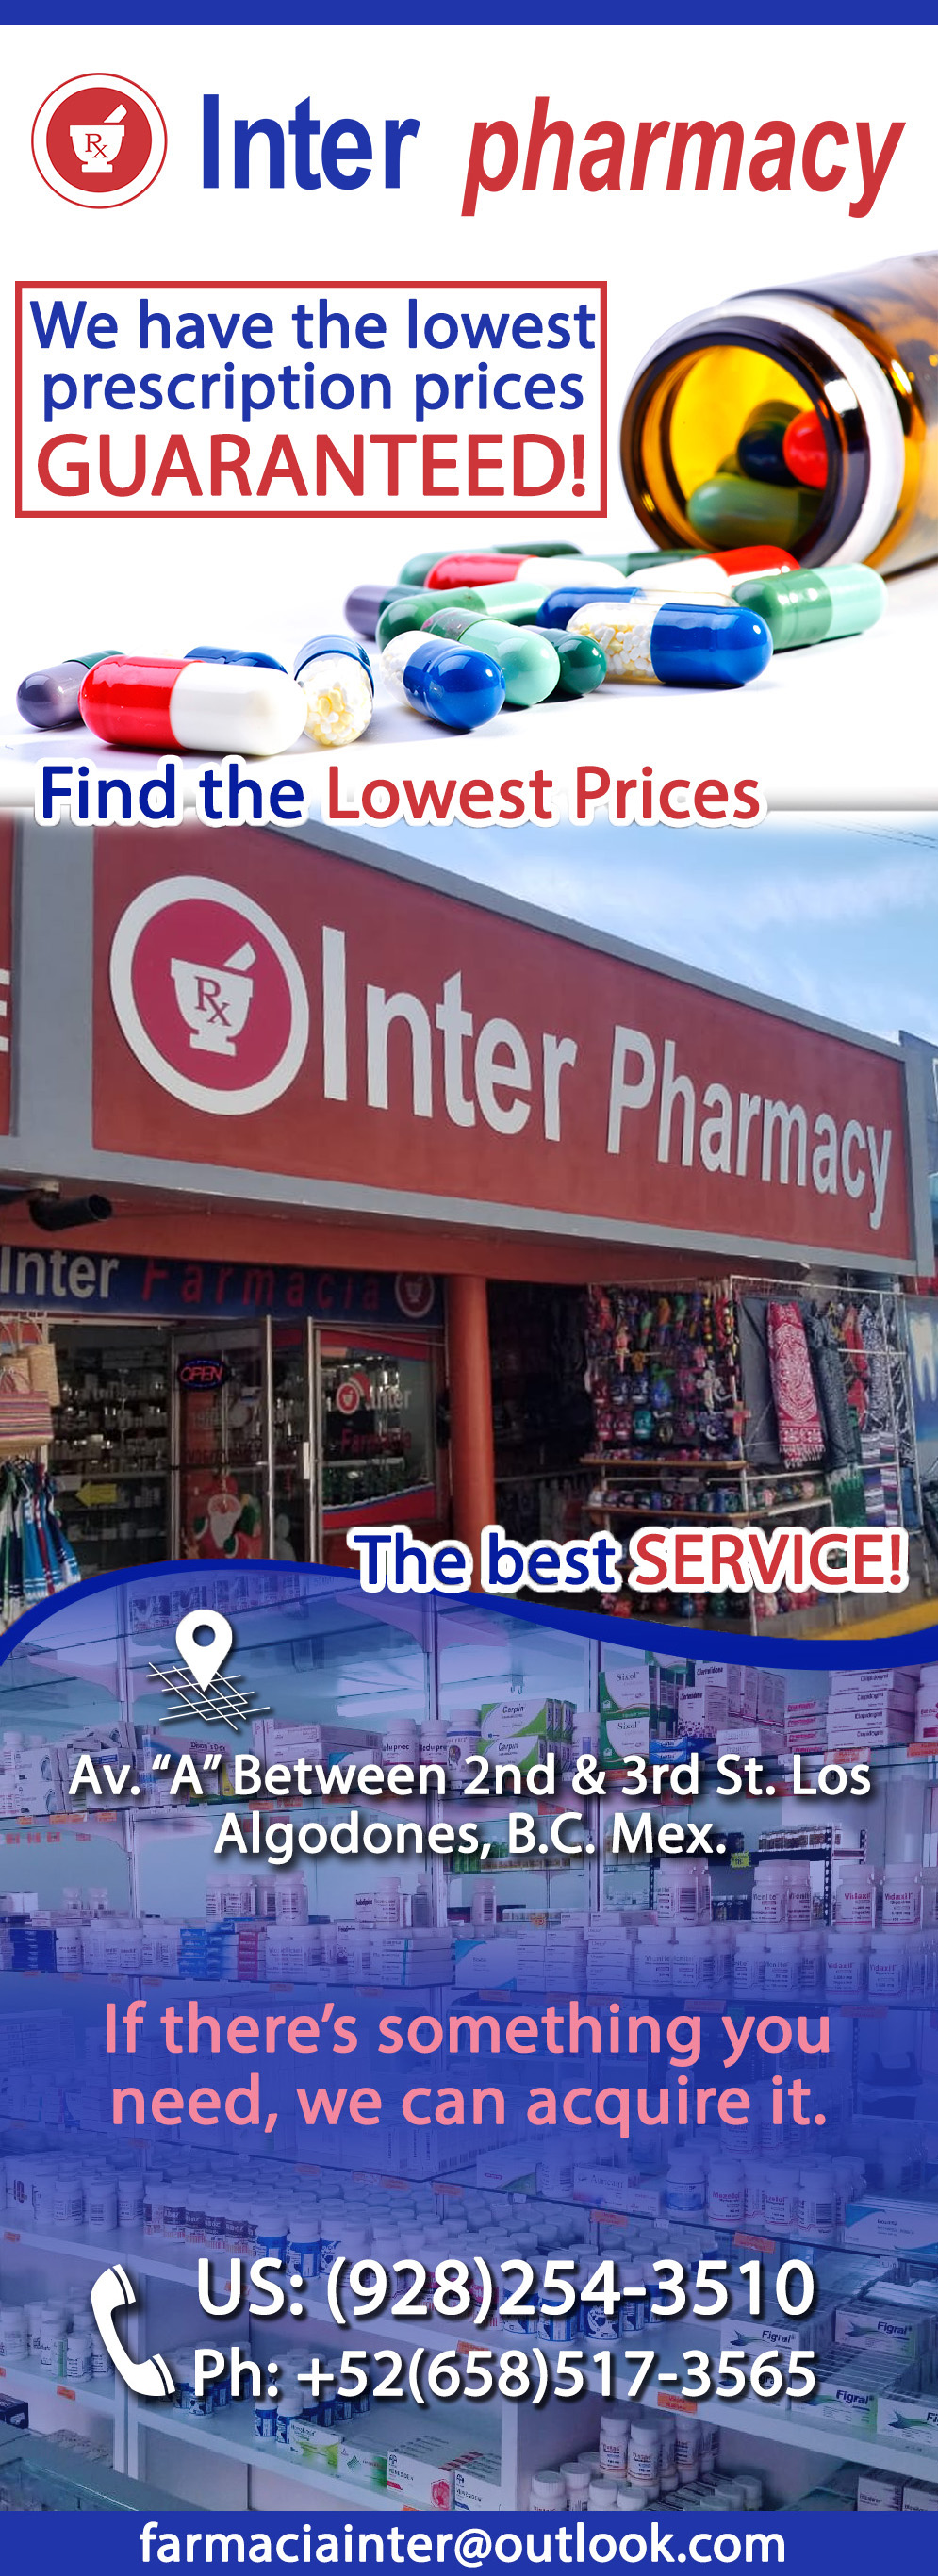 Inter Pharmacy in Algodones  in Algodones  Pharmacy in Algodones, Mexico. We have the lowest prescription prices, GUARANTEED!!